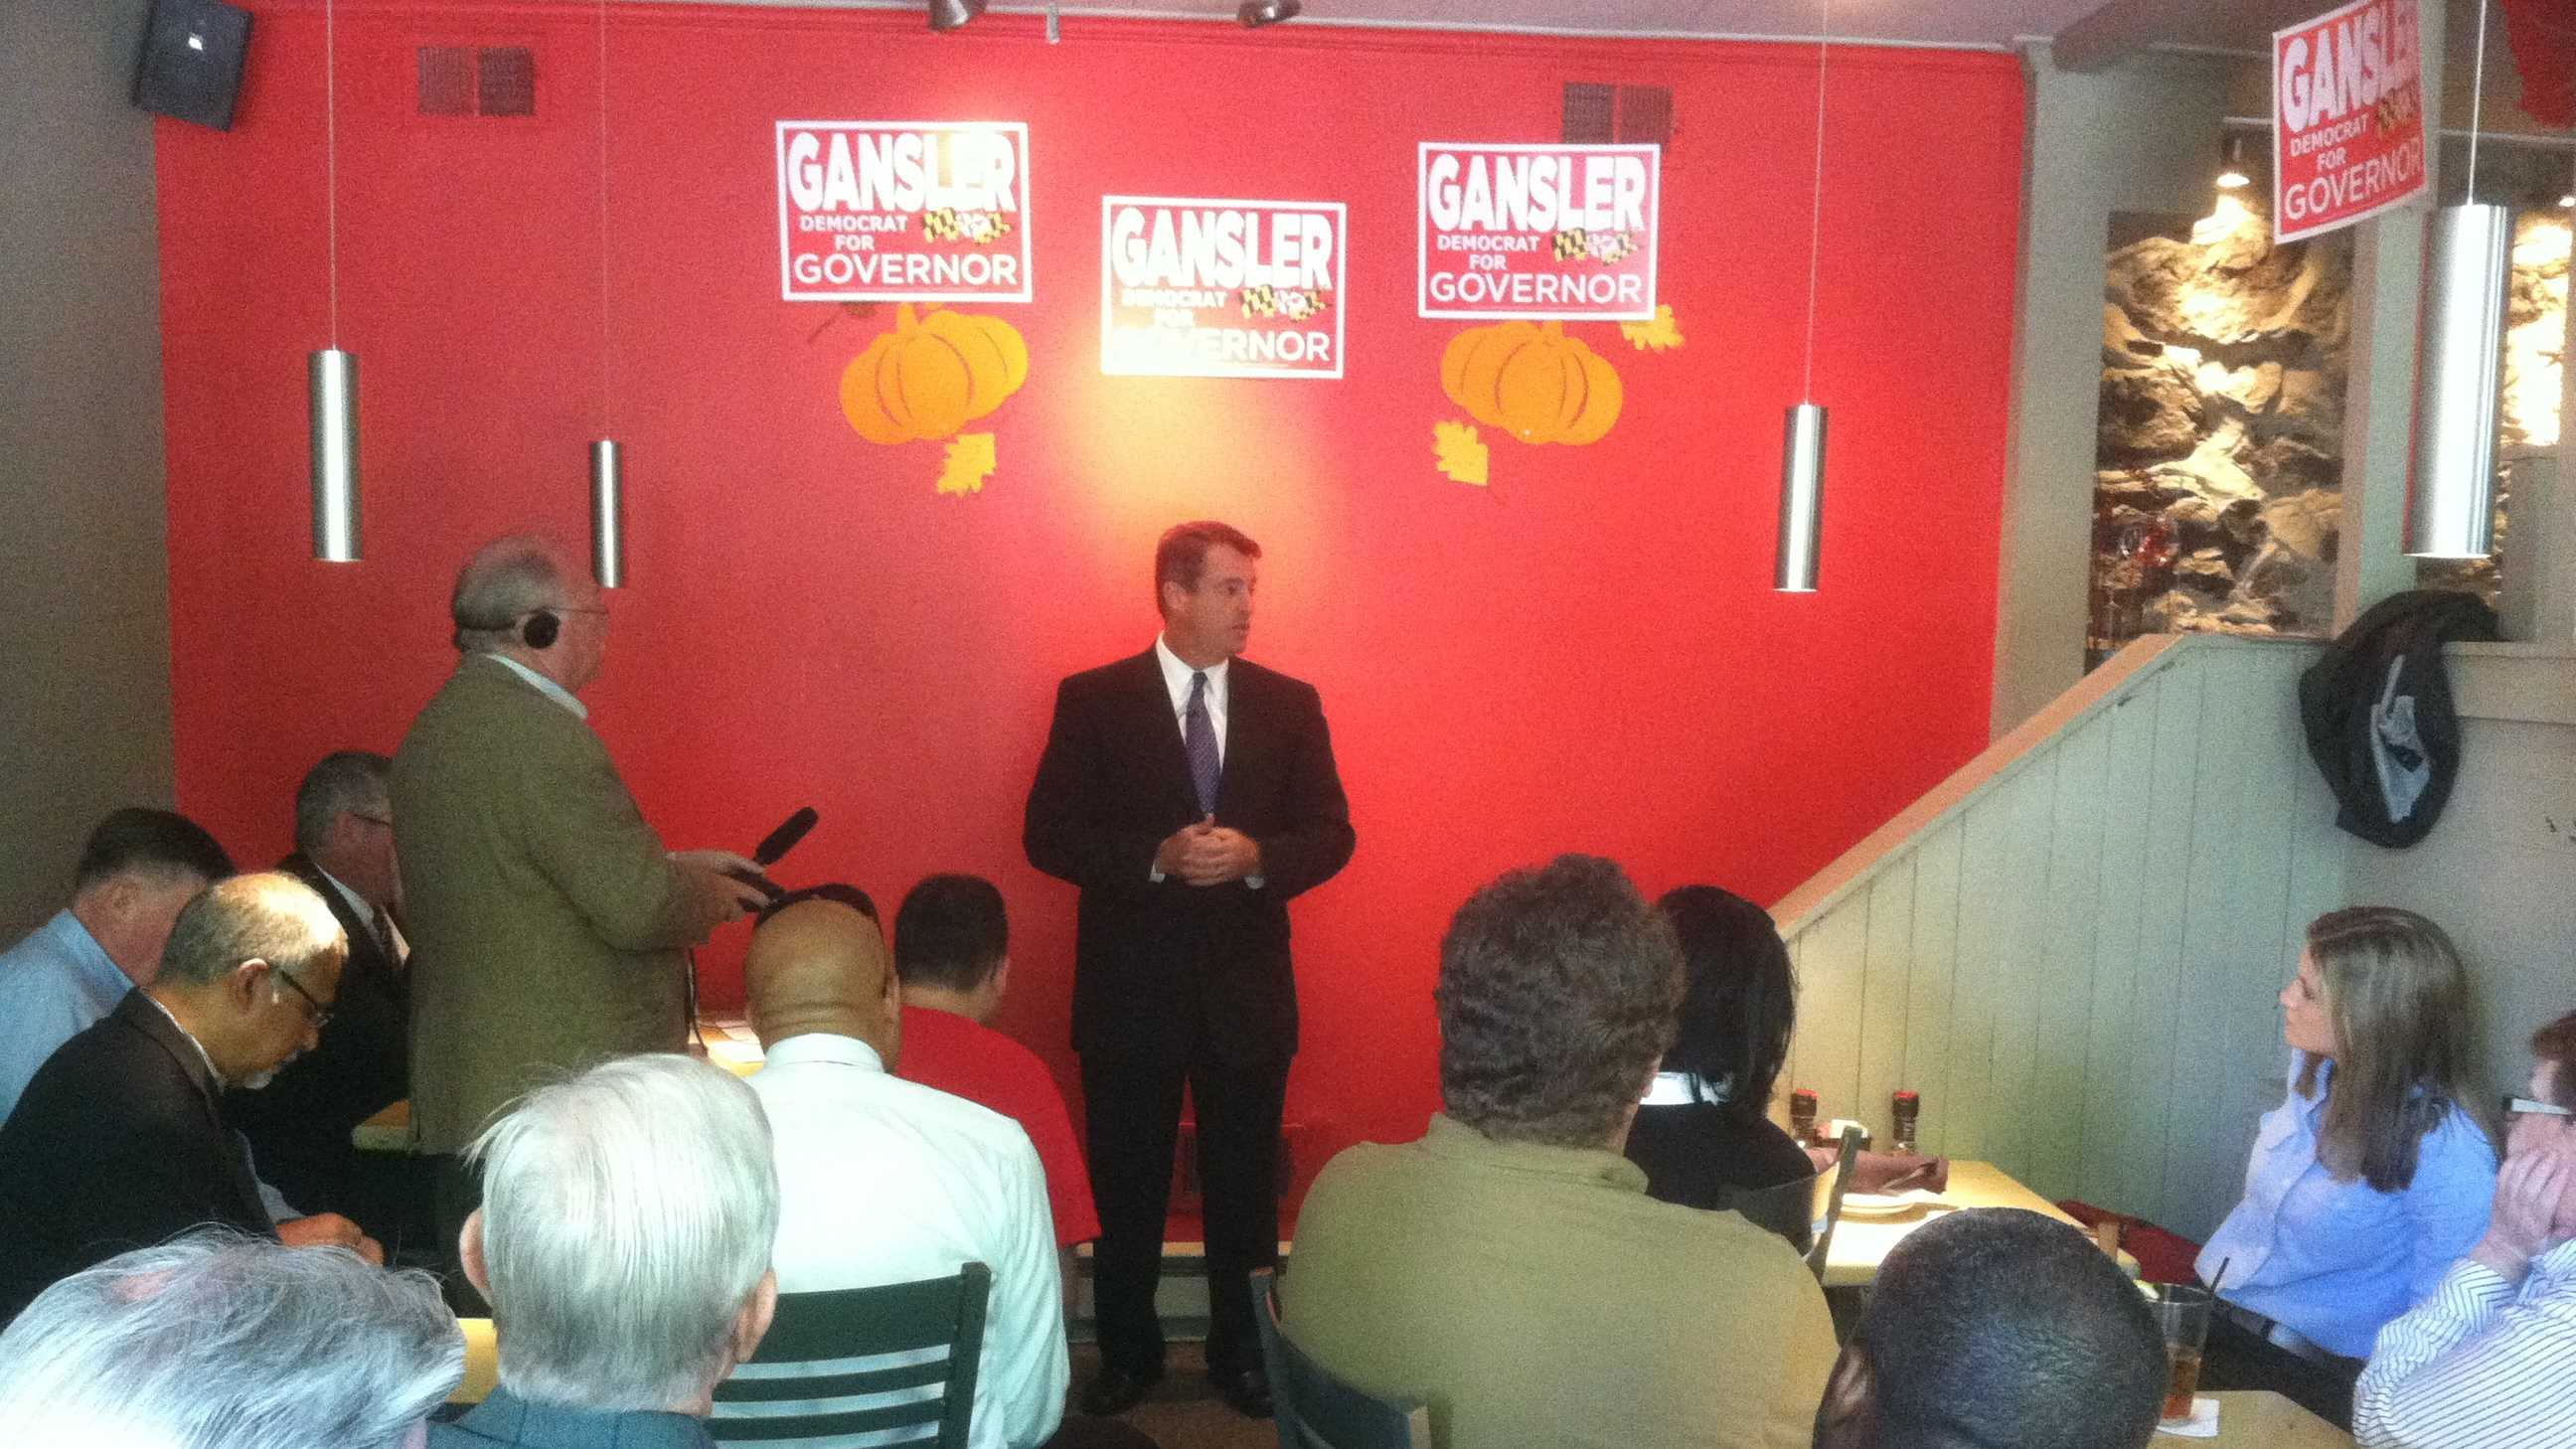 Attorney General Doug Gansler announces his candidacy for governor.